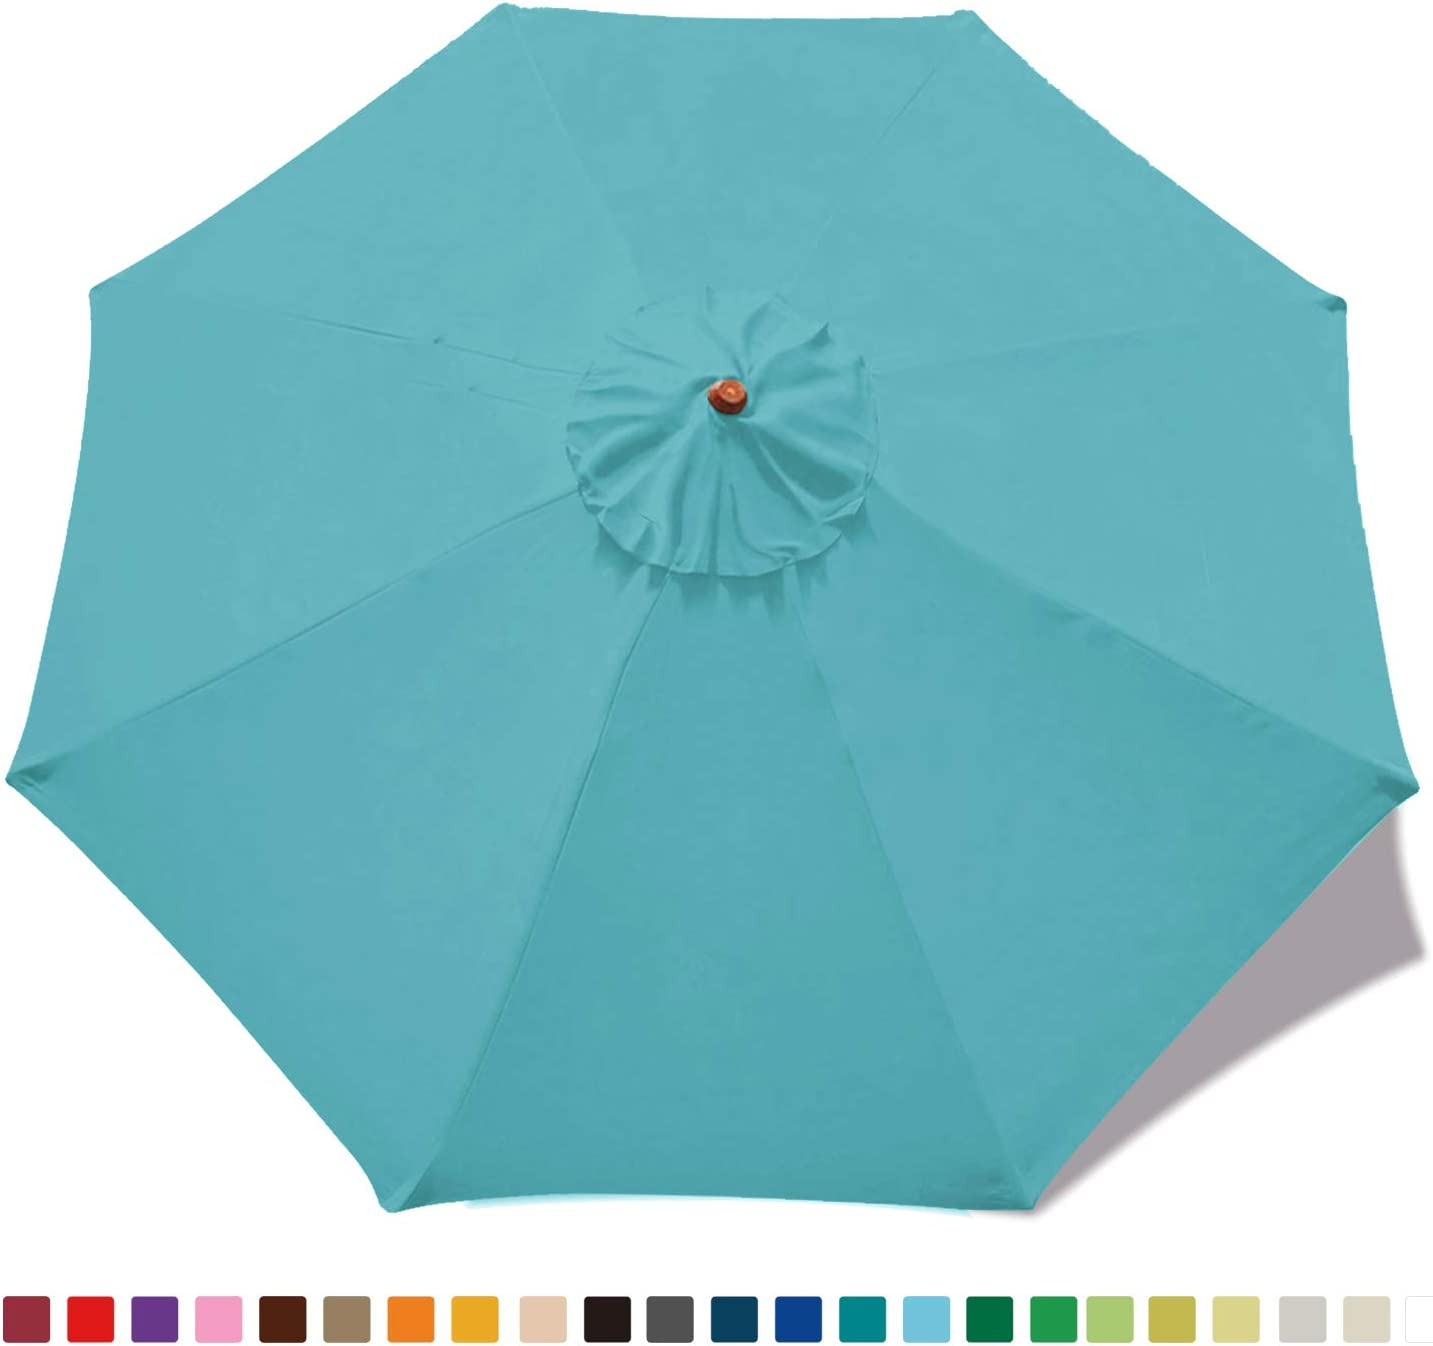 ABCCANOPY 9ft Market Umbrella Patio Umbrella Replacement Canopy 8 Ribs, Khaki Turquoise